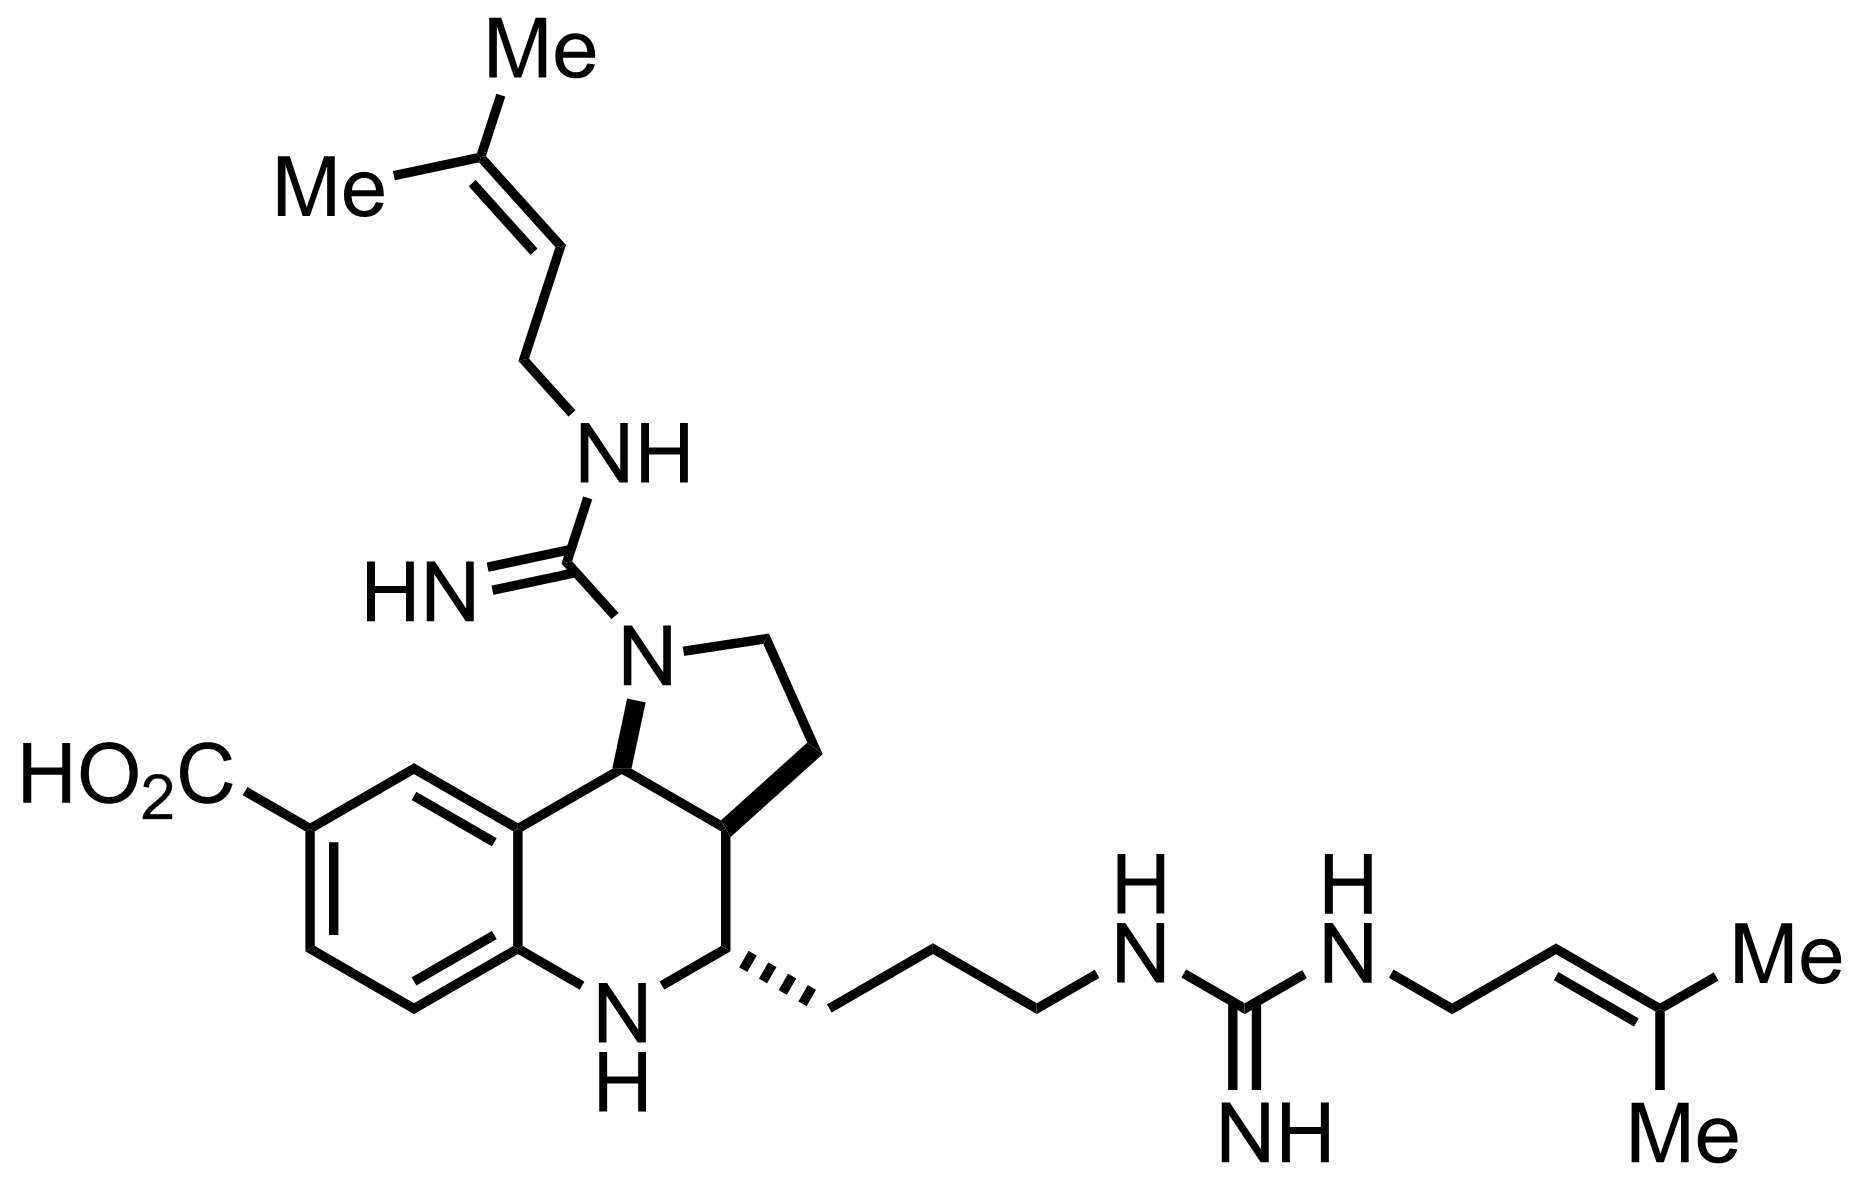 Martinellic Acid structure